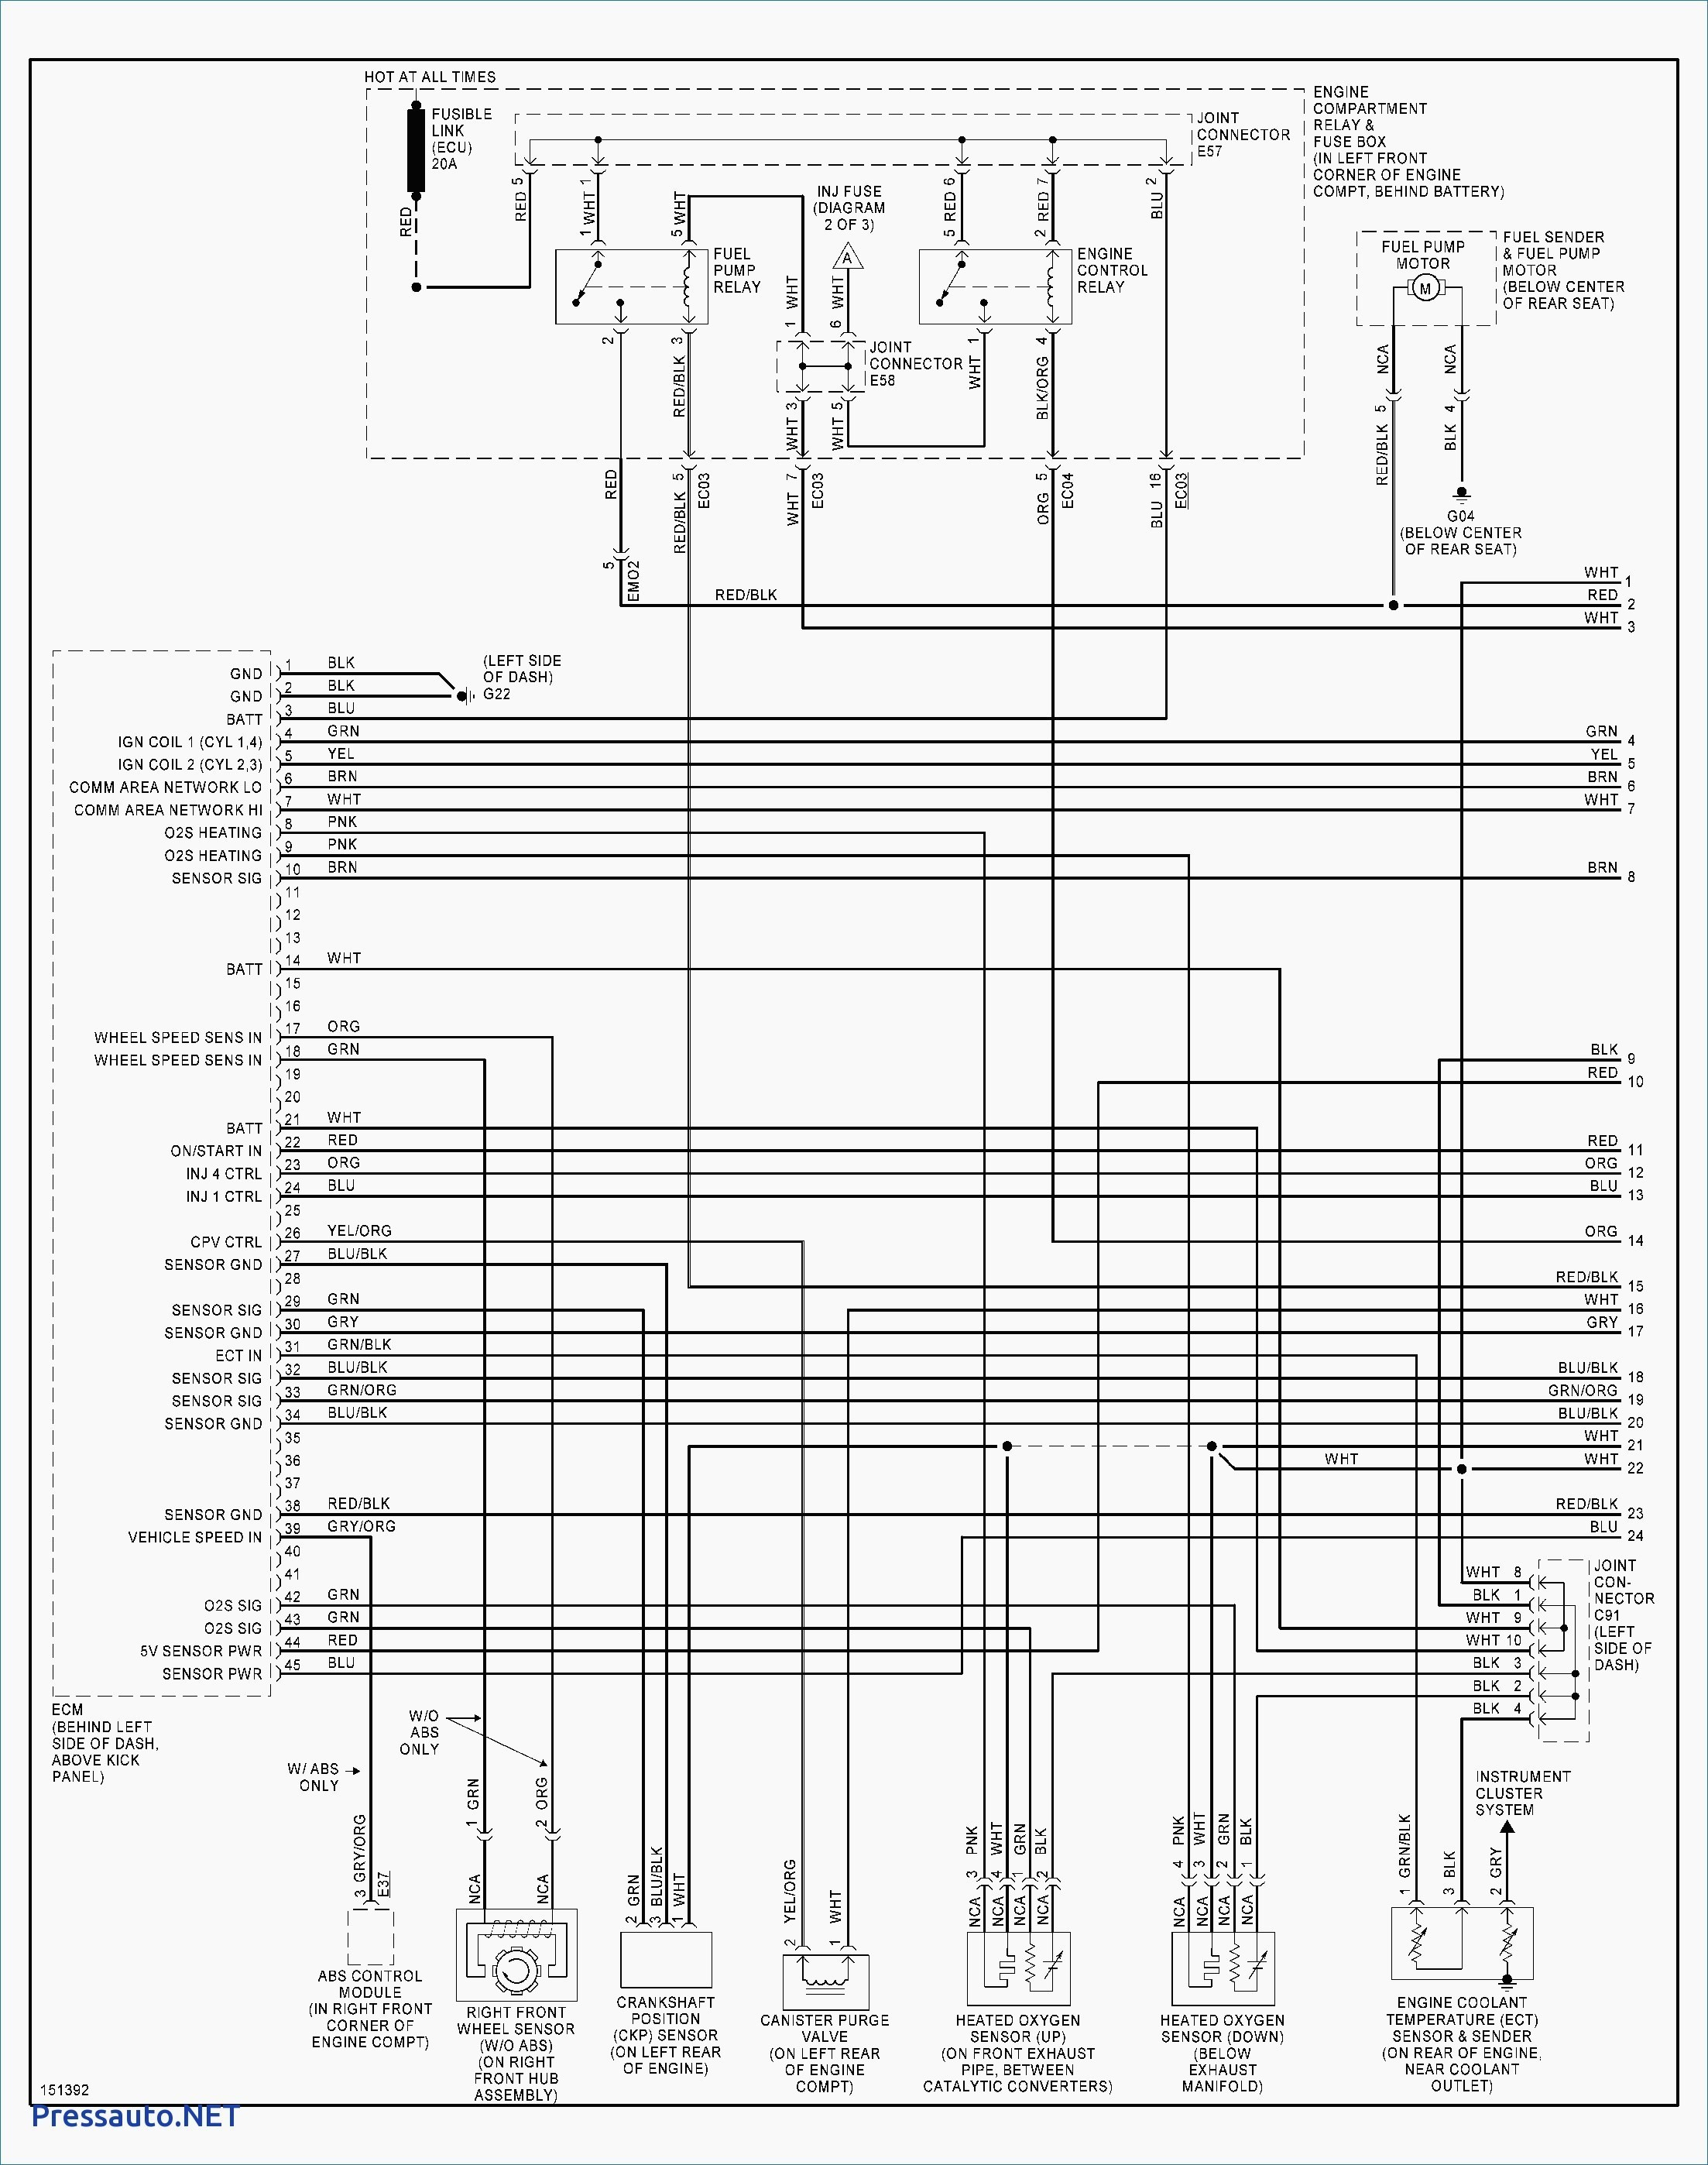 Hyundai Accent X3 Wiring Diagram Opinions About Wiring Diagram \u2022  Hyundai Accent Schematic Diagrams Hyundai Accent Radio Wiring